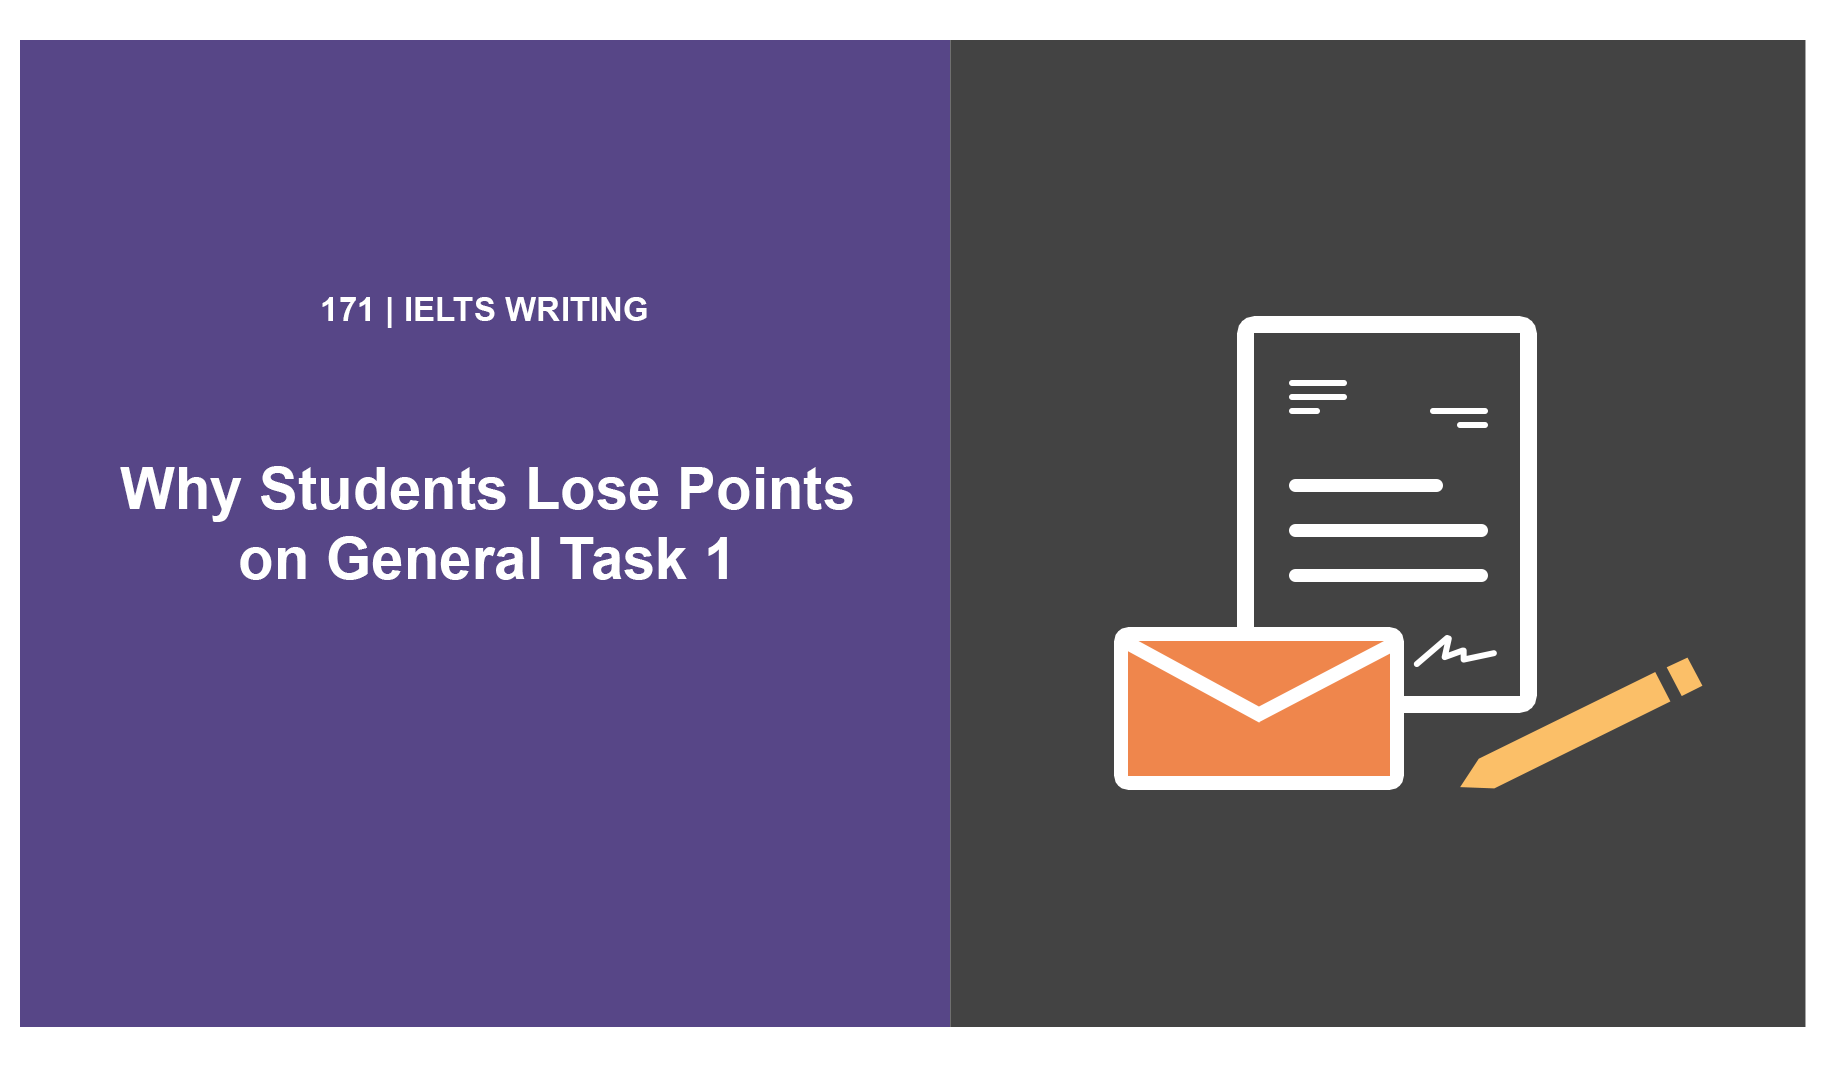 Why Students Lose Points on General Task 1